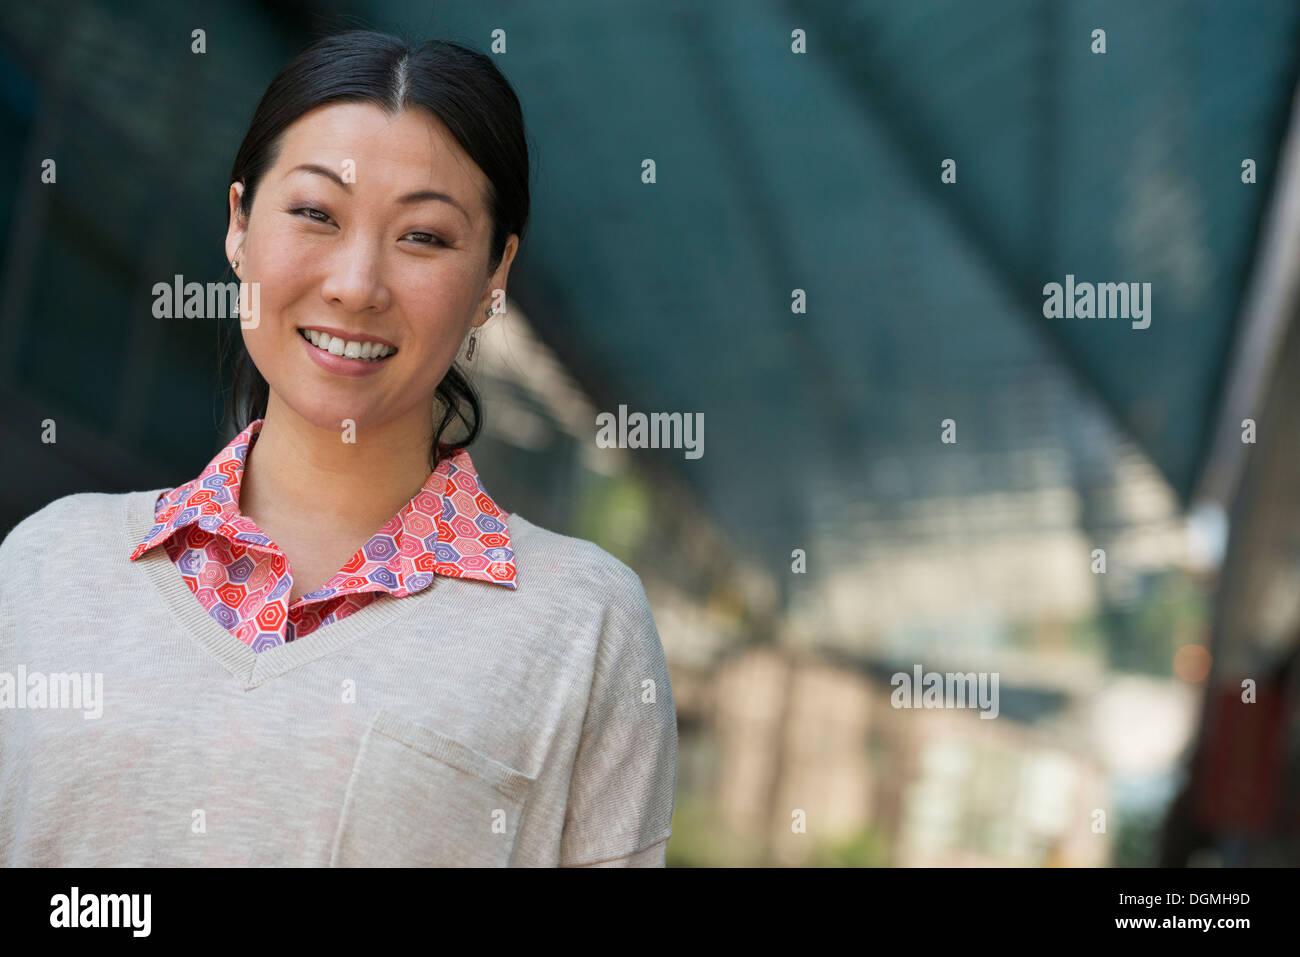 Business people on the move. A woman in a pink shirt and beige sweater. Stock Photo